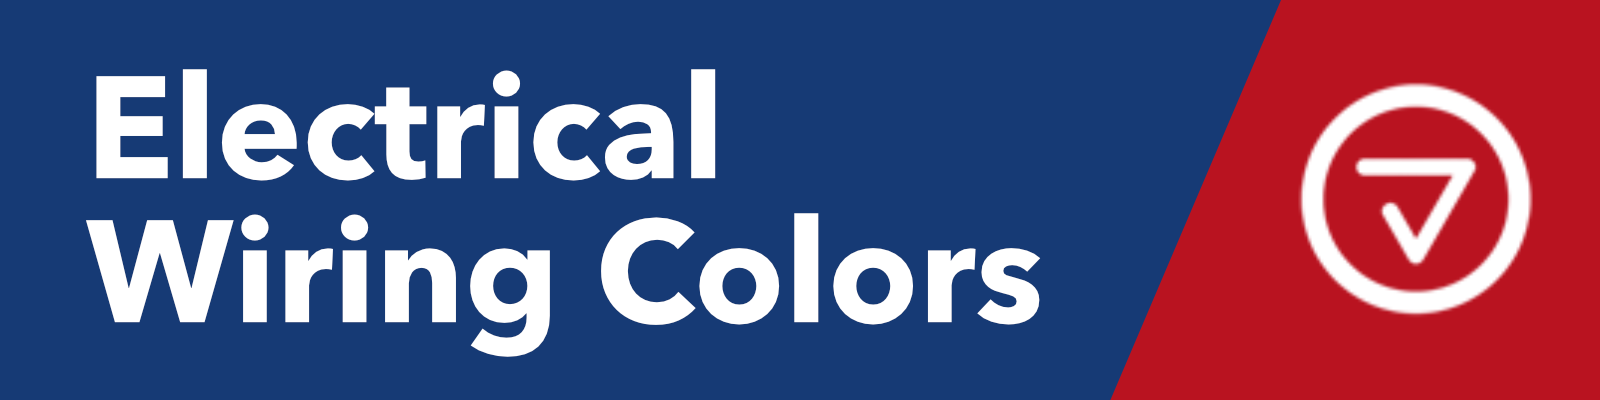 Electrical Wiring Colors